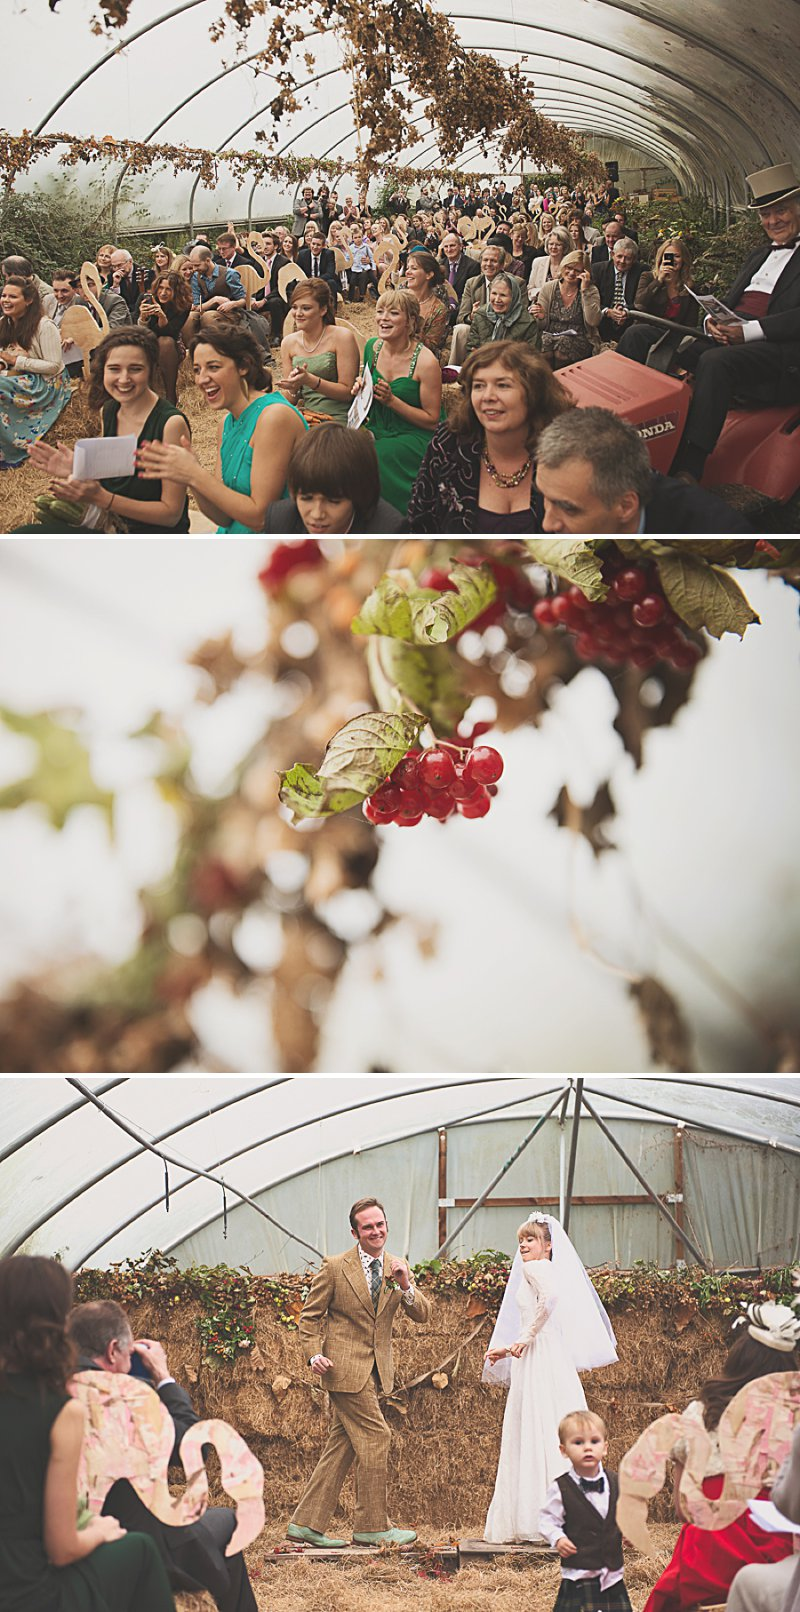 A DIY Wedding with homemade flowers, flamingo art, a polytunnel ceremony, apples, pumpkins, vintage dress and suit and vegetable bouquets.  Apple sharing ceremony at home with photography by Camilla Rosa_0007